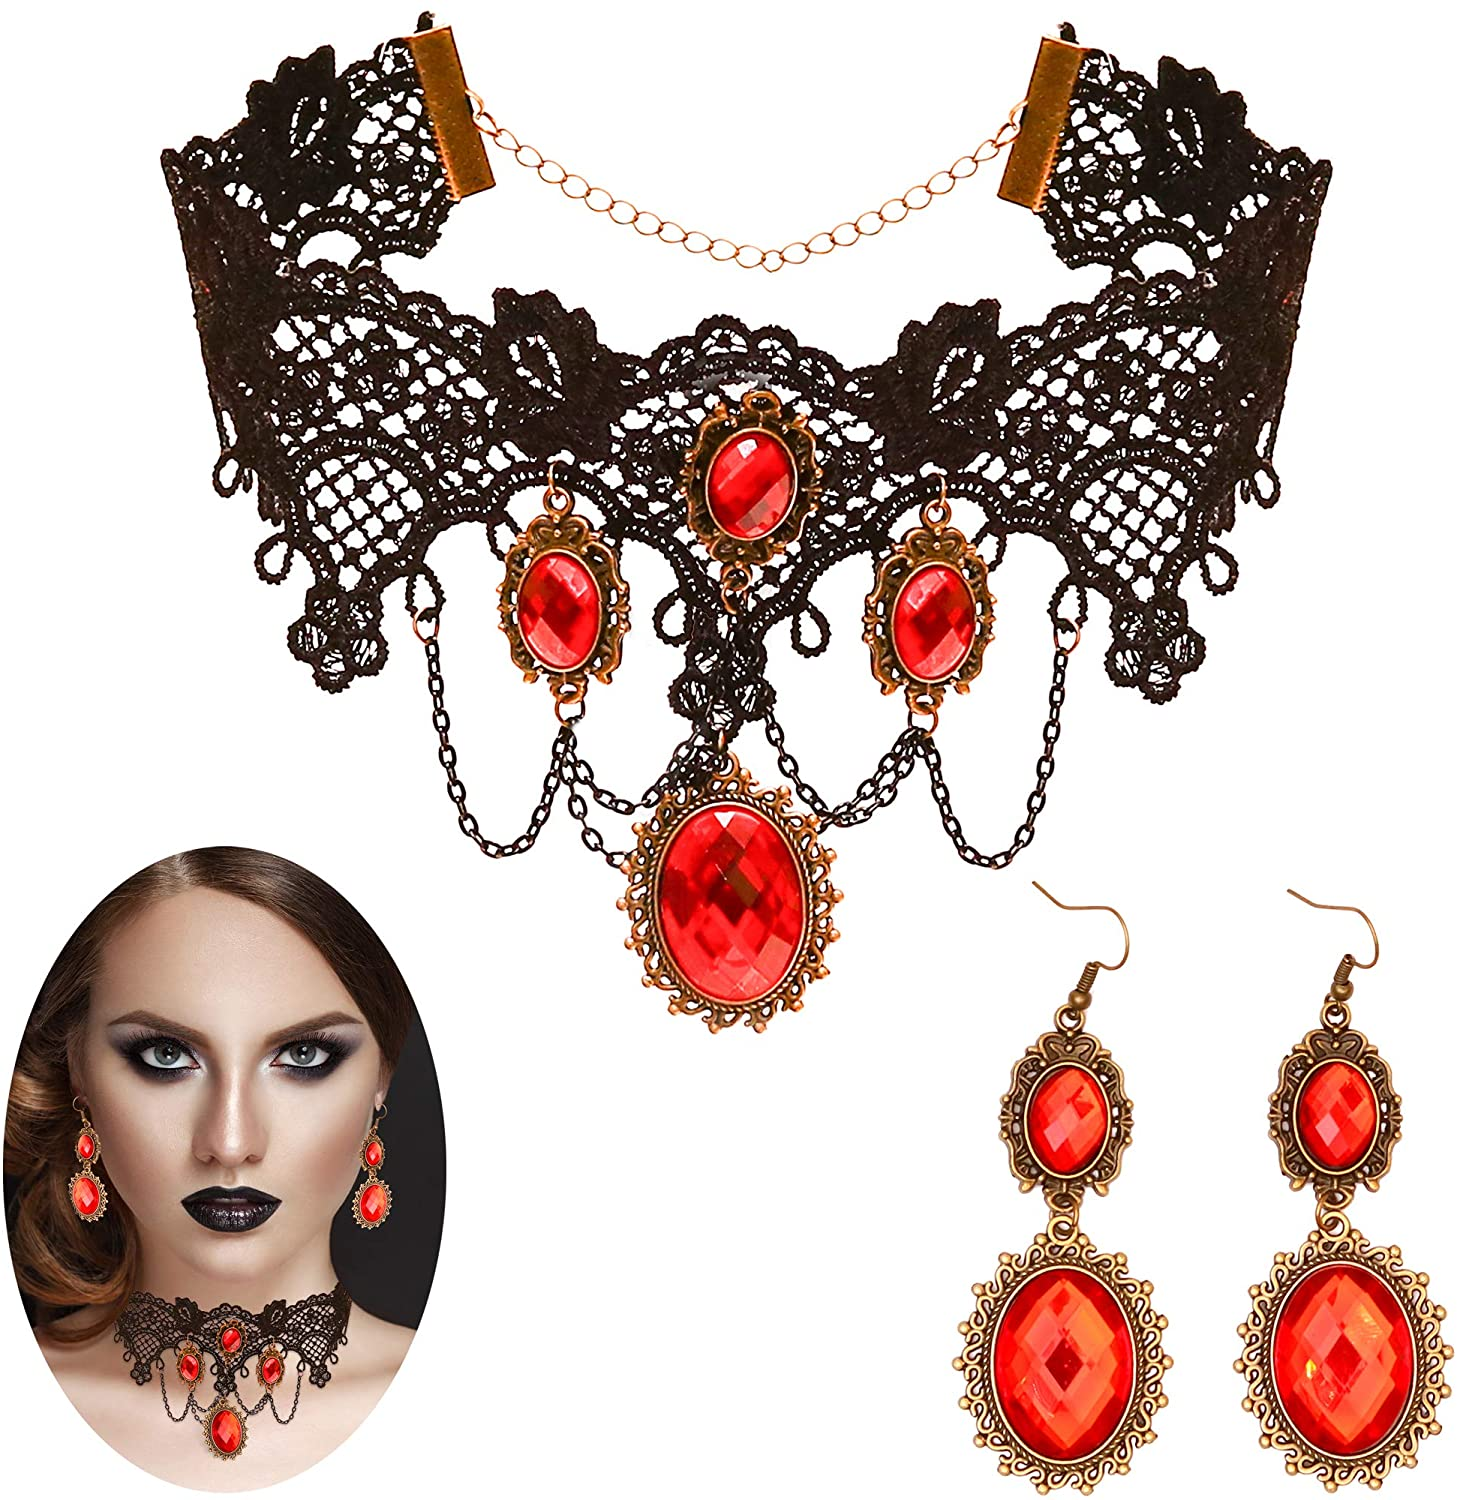 Skeleteen Gothic Vampire Jewelry Set - Black Lace Choker with Red Rhinestone Earrings Pirate Accessories Set for Women and Girls